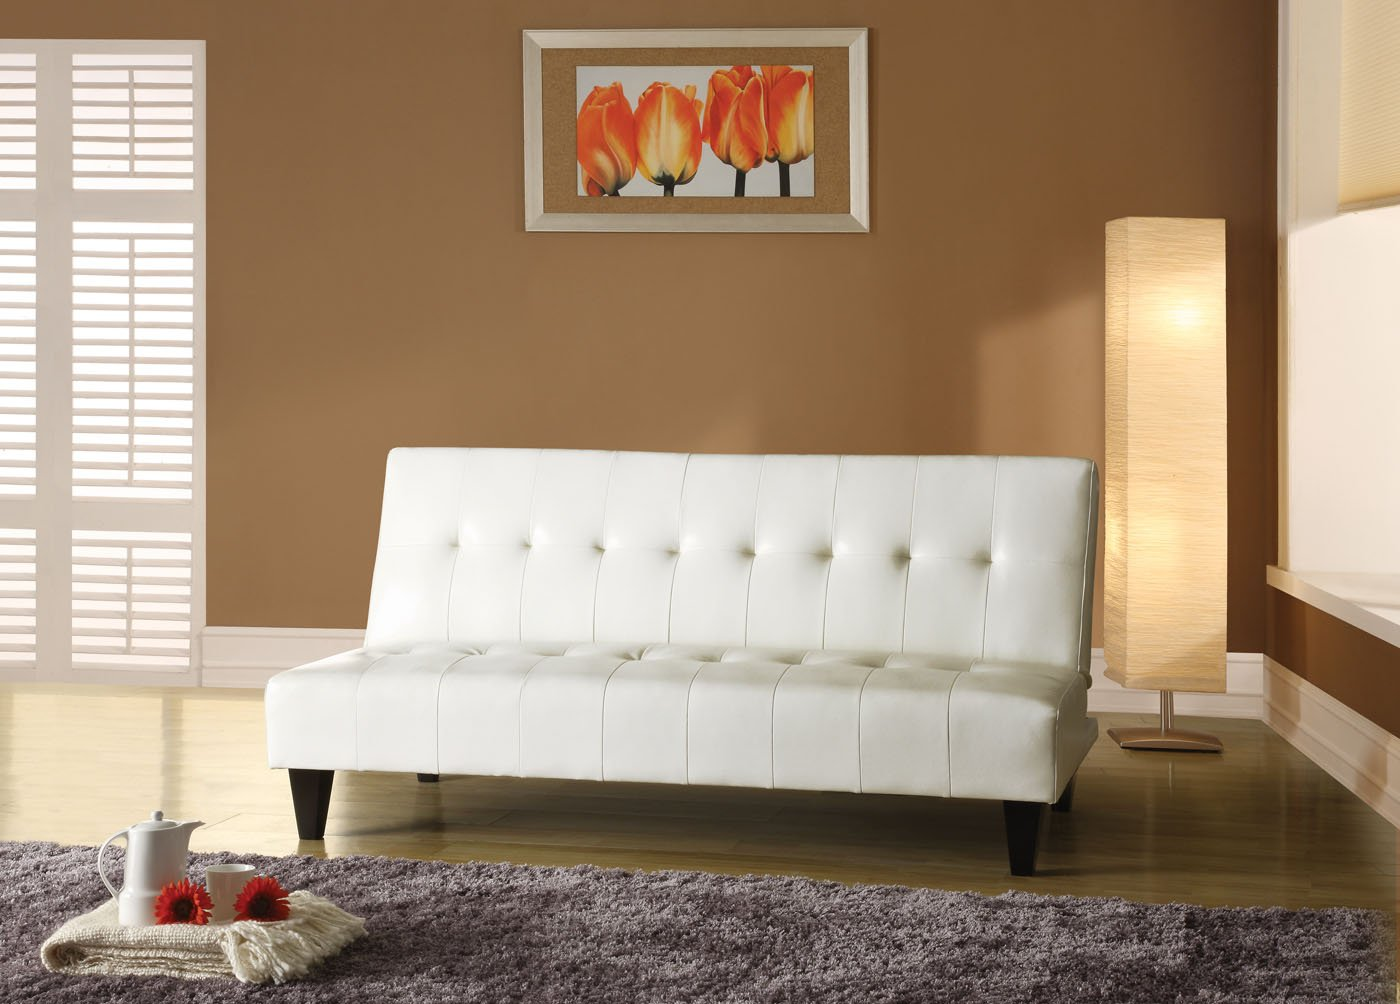 Attractive Amazon.com: Acme 05858C Conrad Adjustable Sofa, White Polyurethane Finish:  Kitchen U0026 Dining